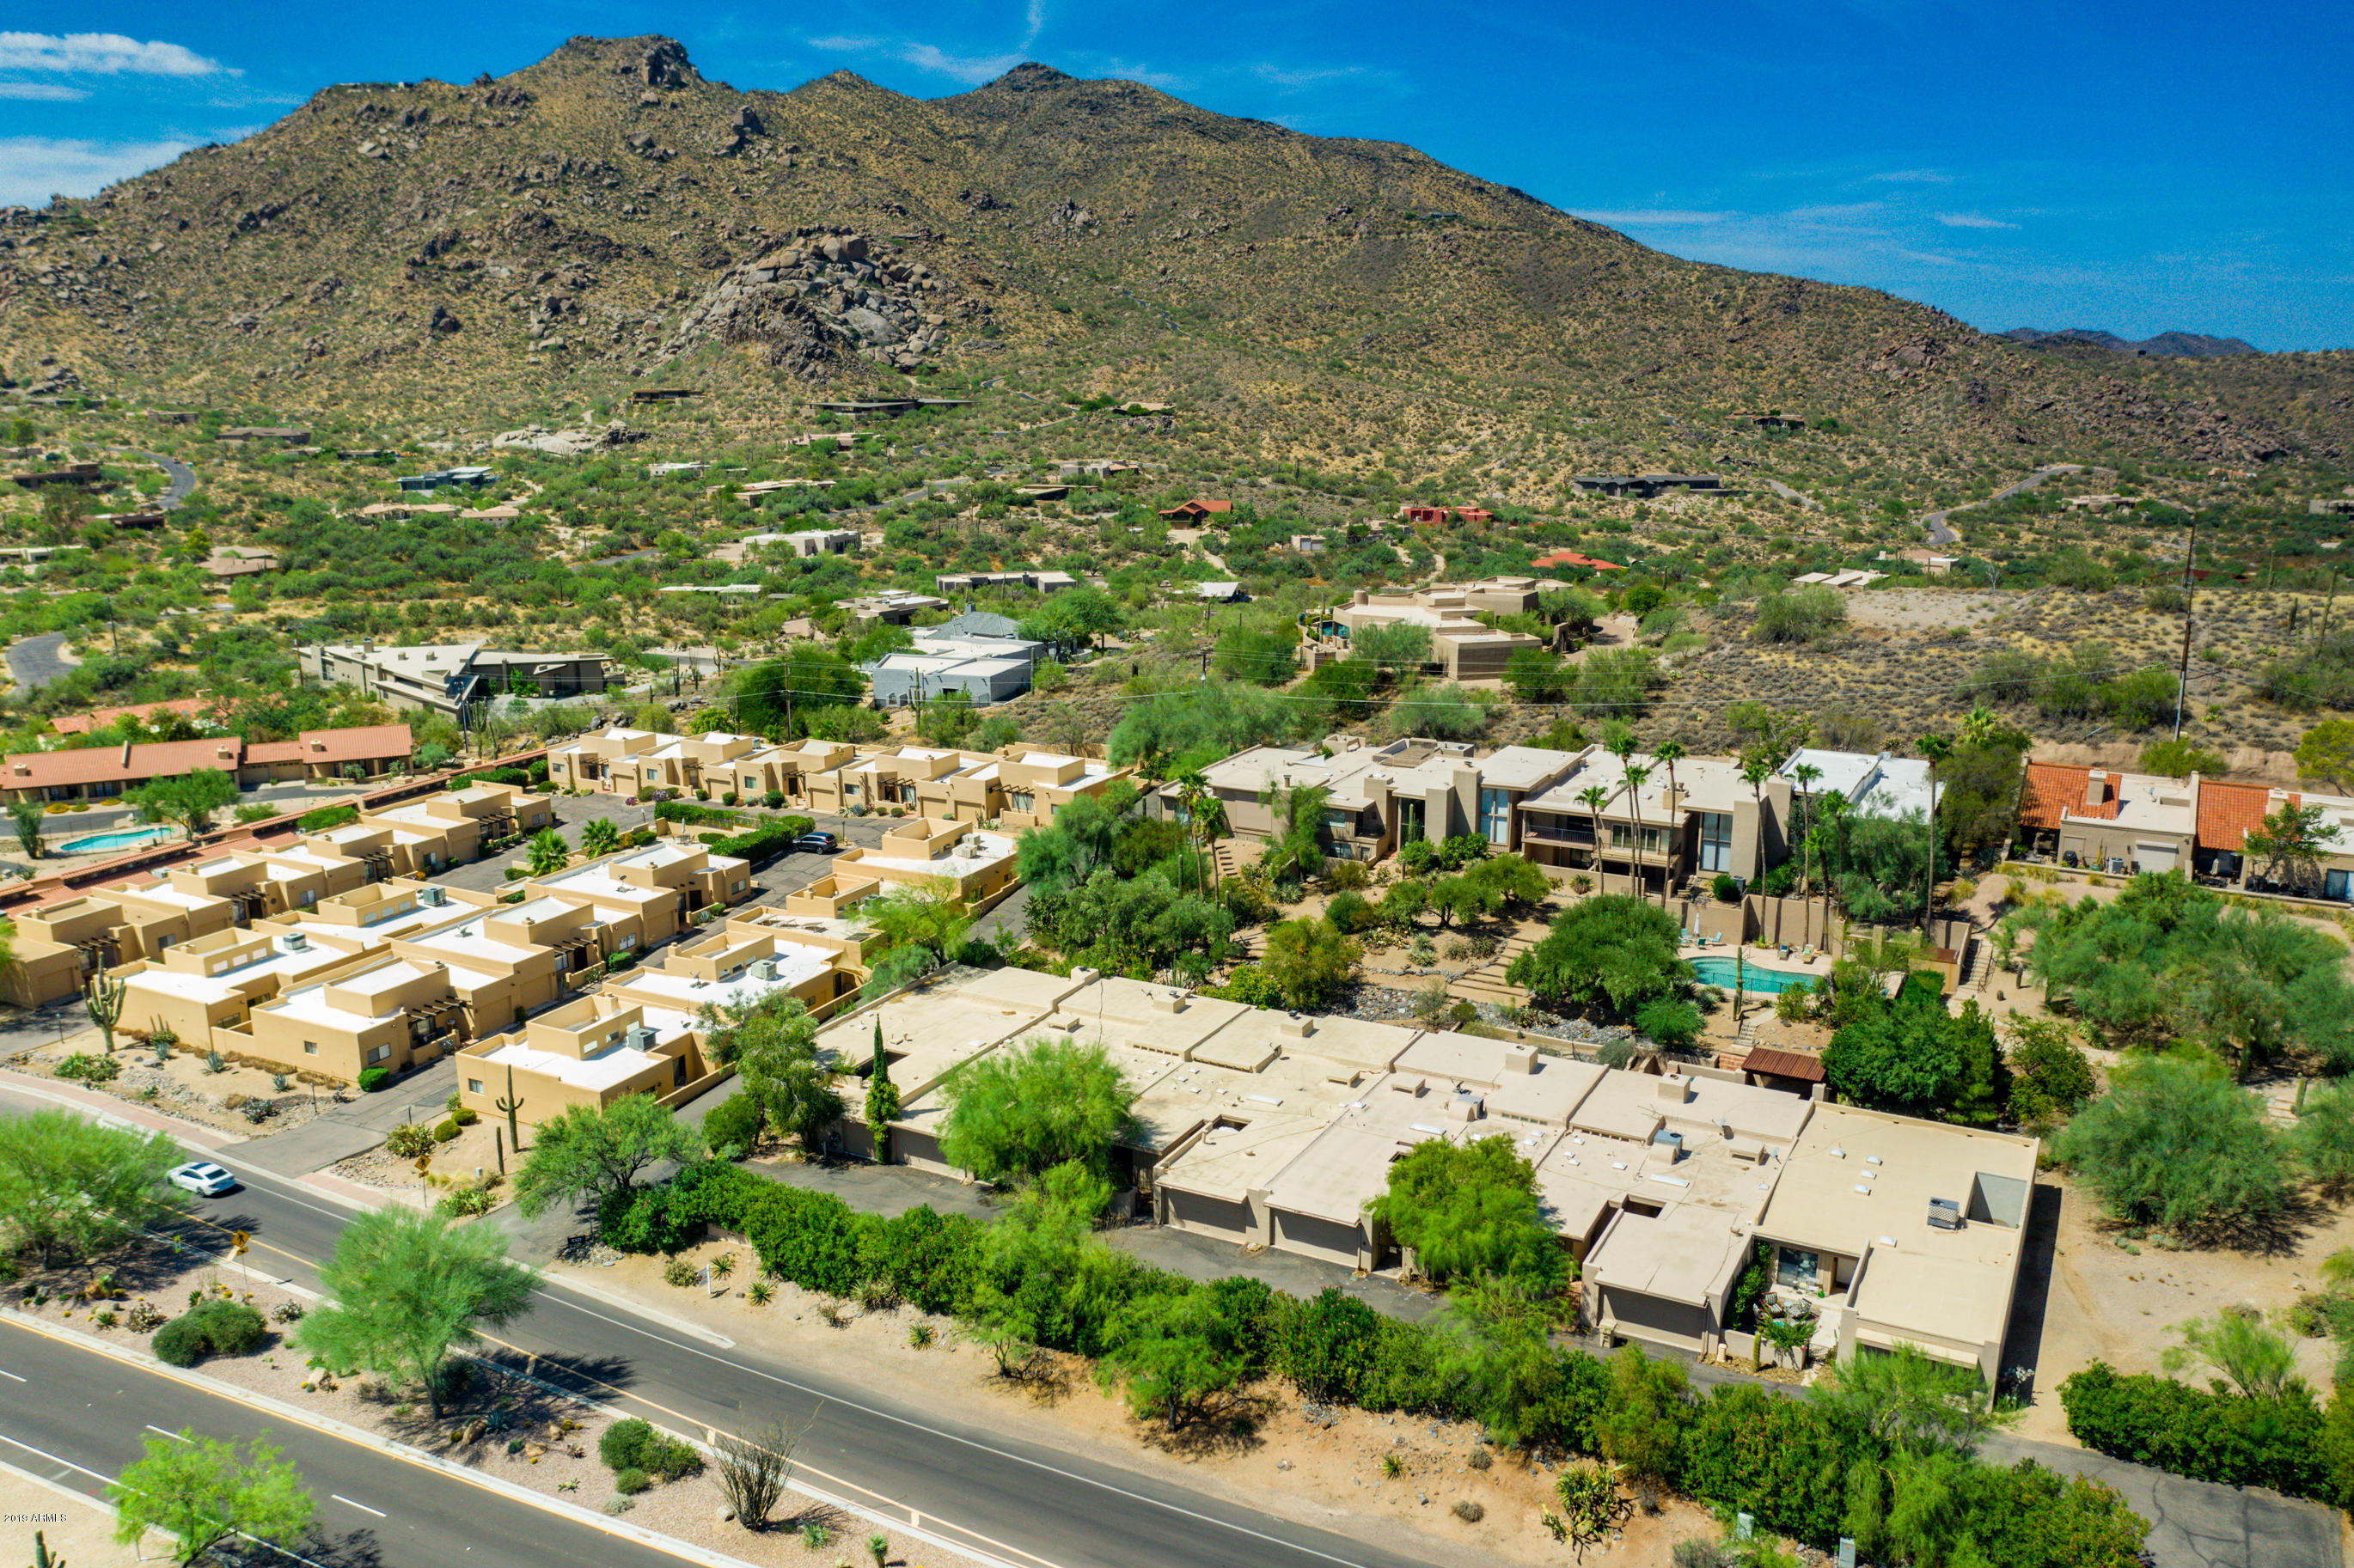 MLS 5972164 37300 N TOM DARLINGTON Drive Unit T, Carefree, AZ 85377 Carefree AZ Condo or Townhome